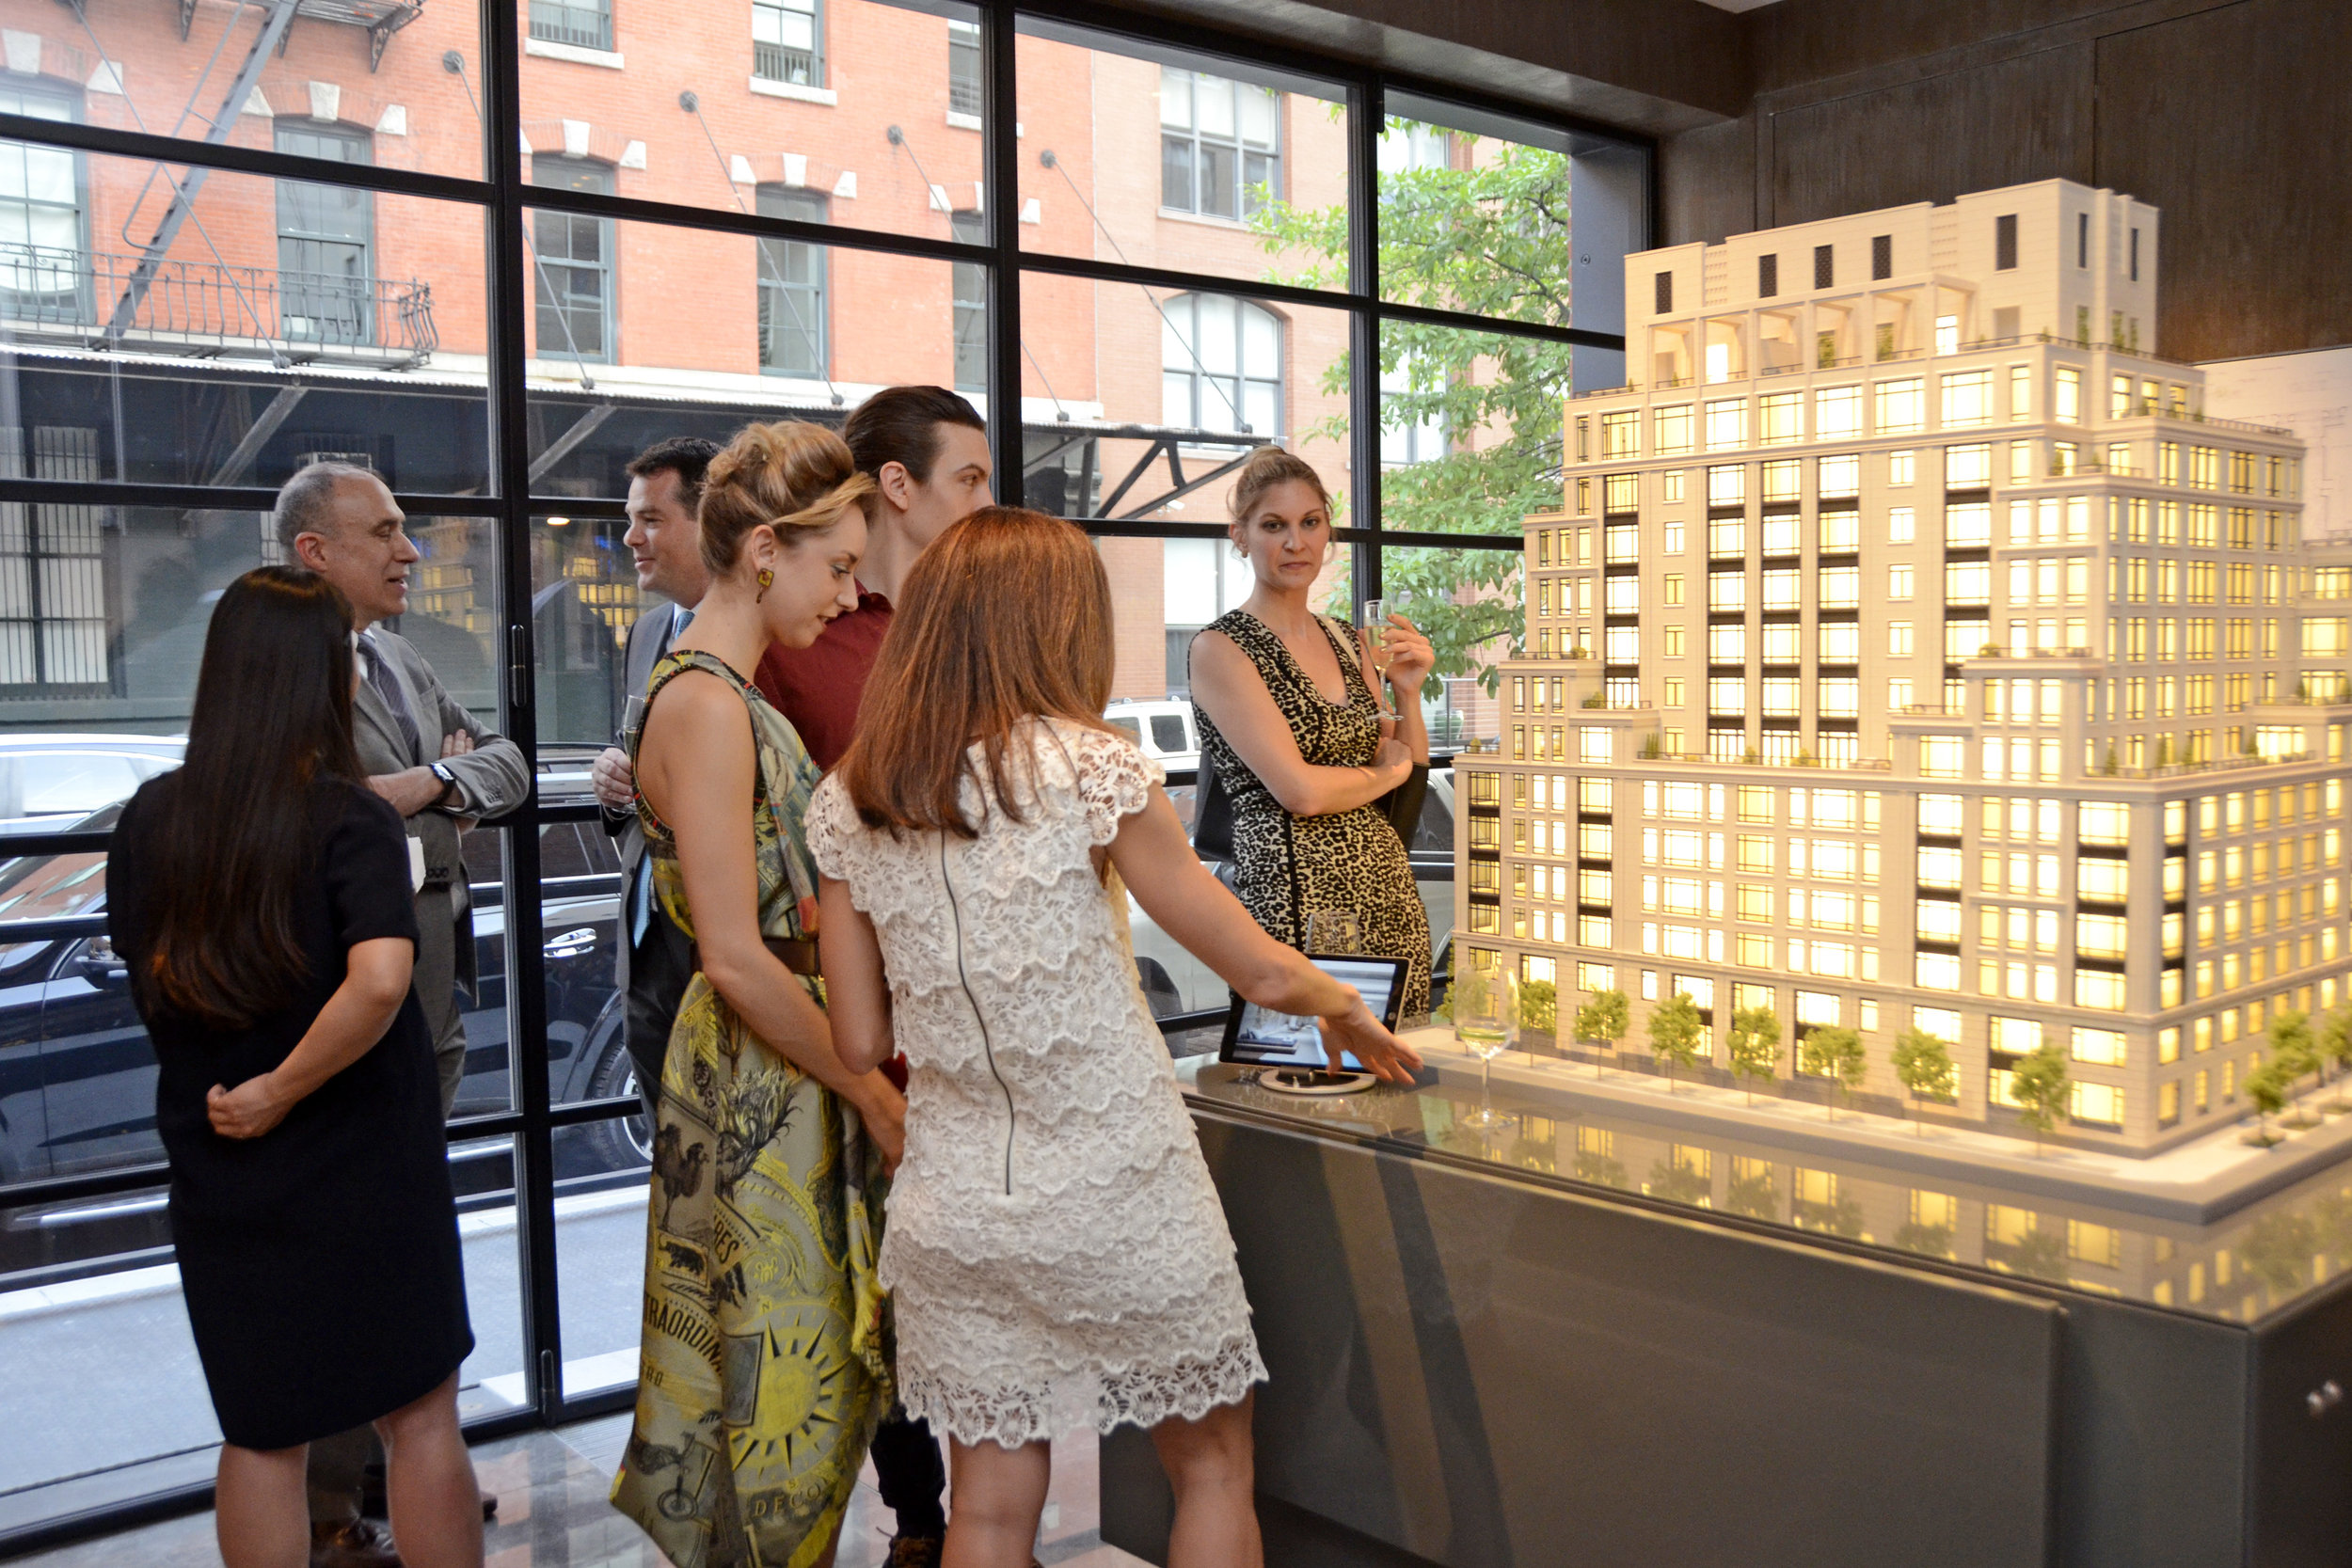 Guests observing the model and virtual tour of 70 Vestry Street. Credit: Lukas Greyson